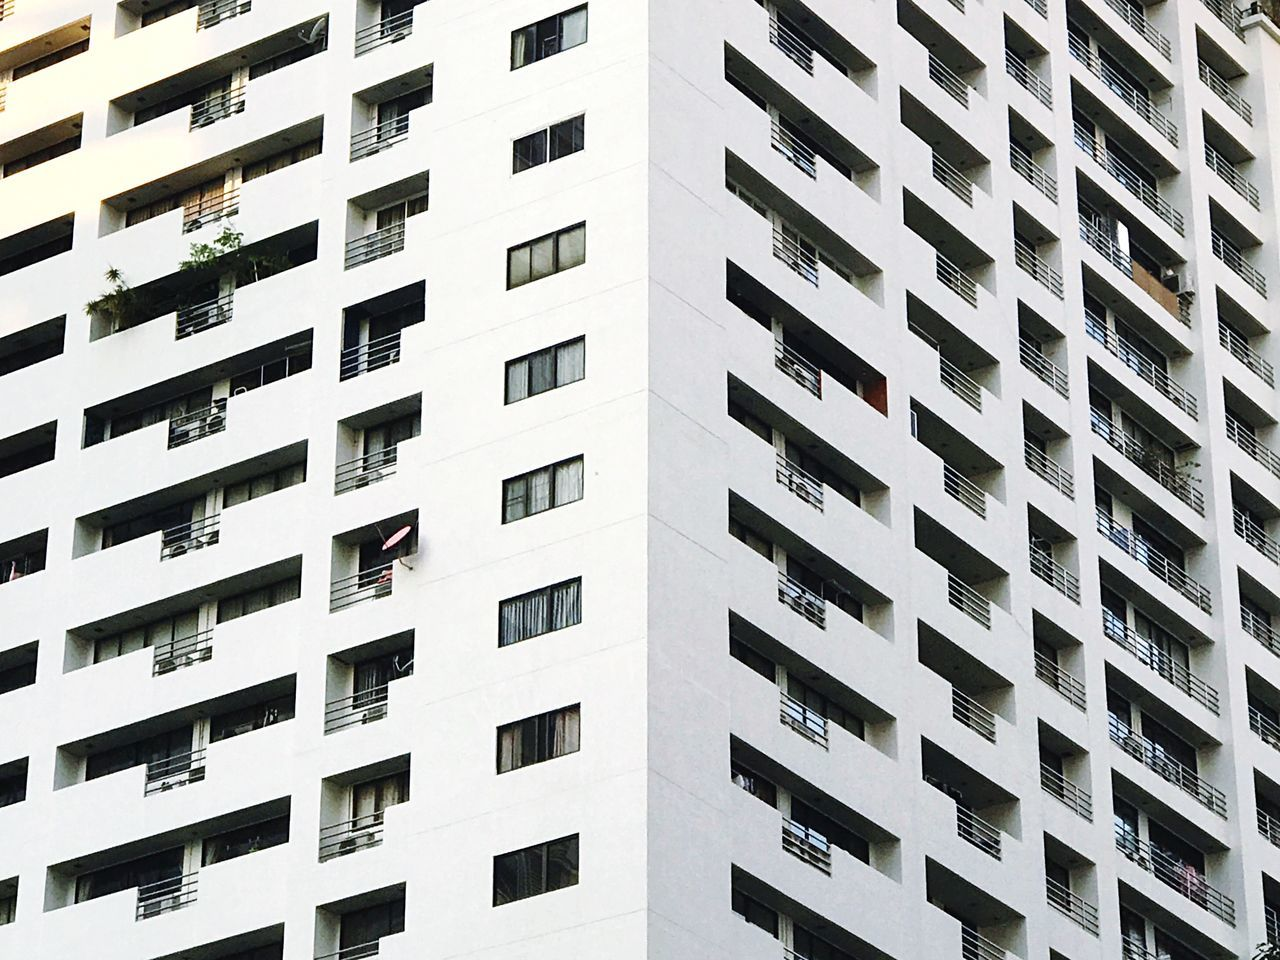 Building Exterior Architecture Built Structure Window Apartment City Repetition Residential Building Outdoors Low Angle View Day No People Balcony Skyscraper Architecture Low Angle View Minimalist Architecture Buildingstyles